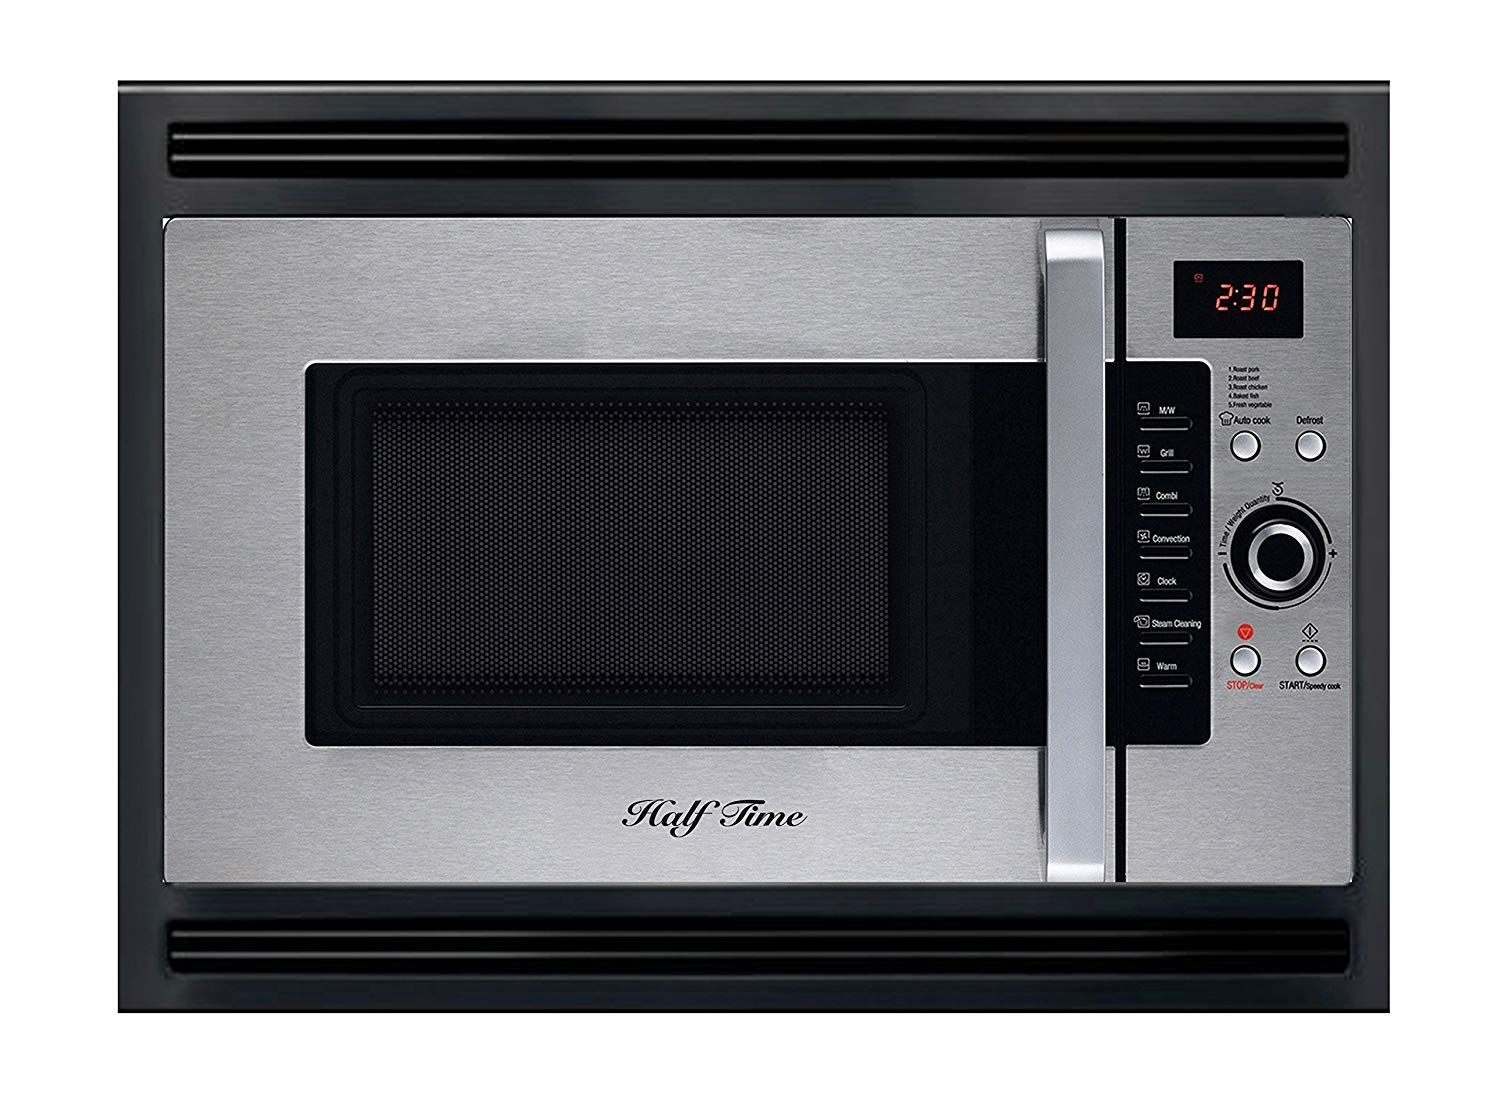 Sharp Convection Microwave With Trim Kit Bestmicrowave